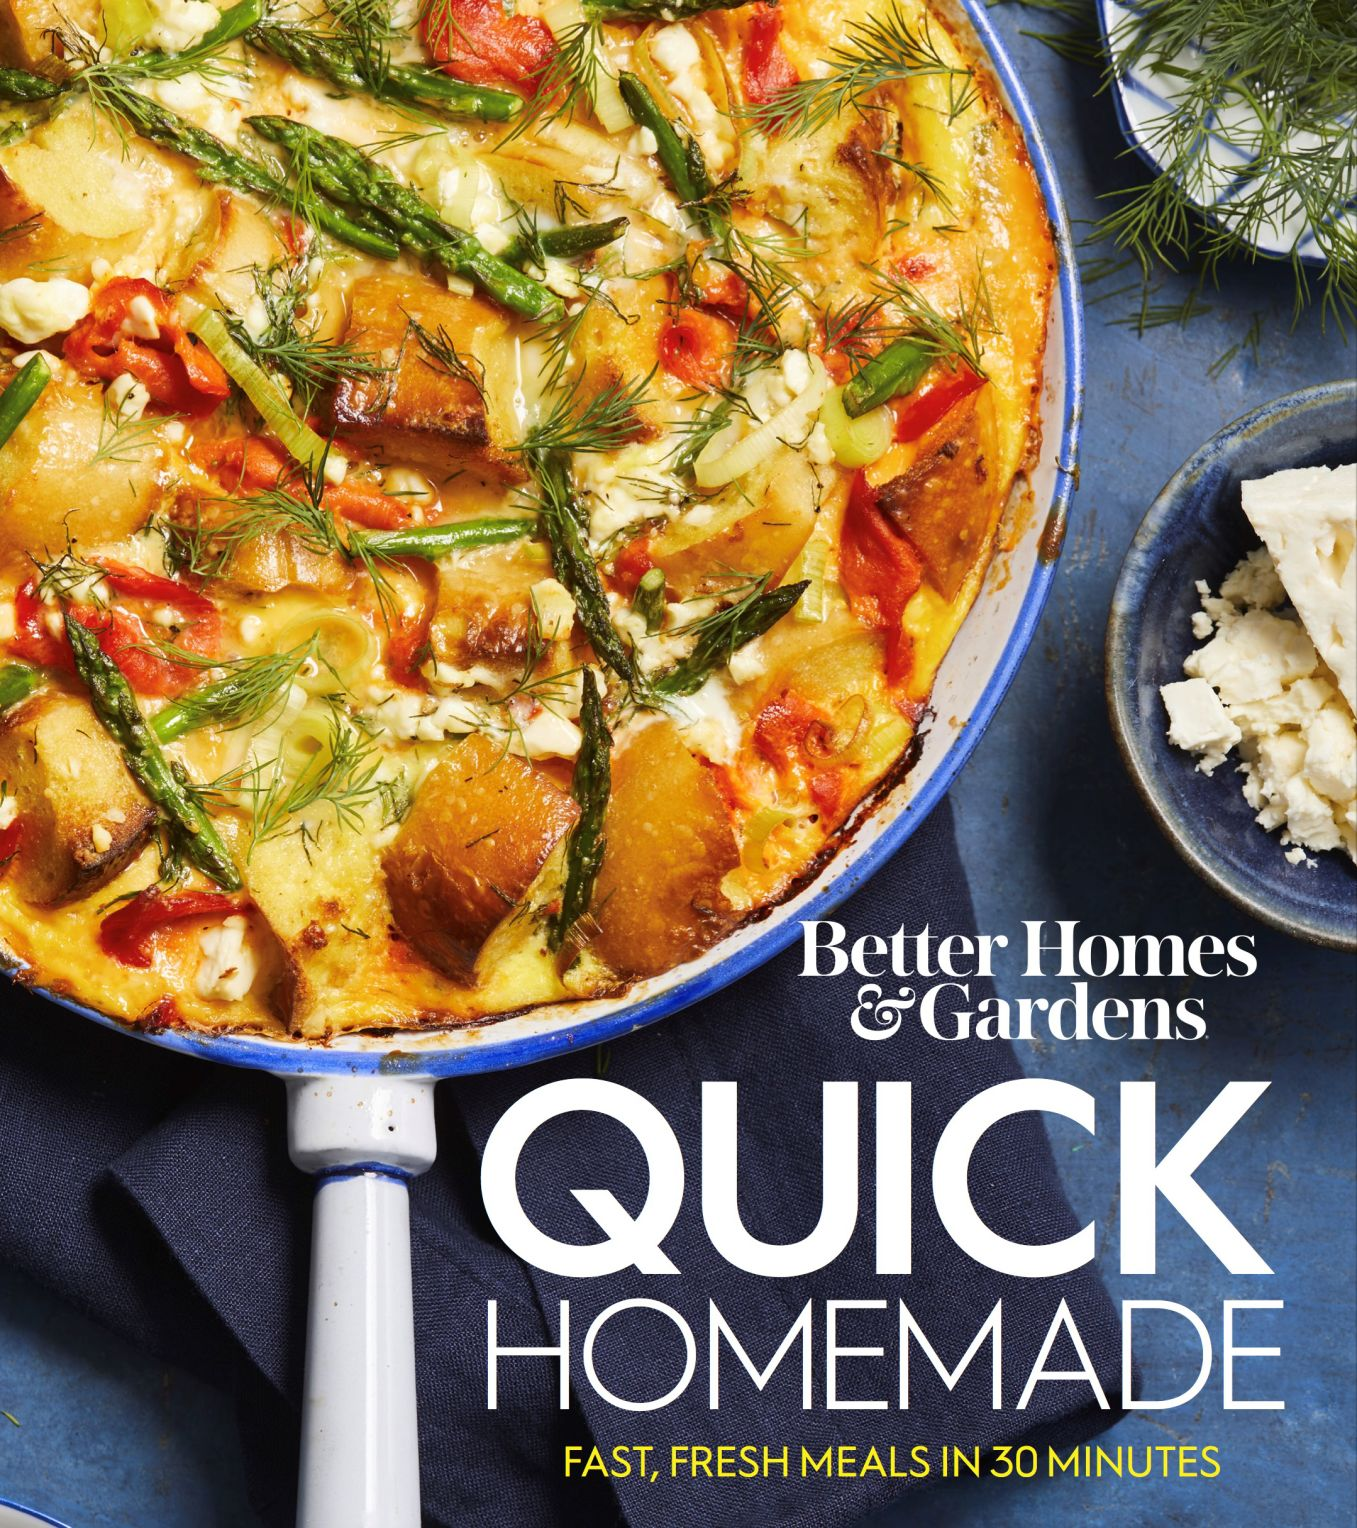 Side Dish: New cookbook offers delicious, quick-to-make meals